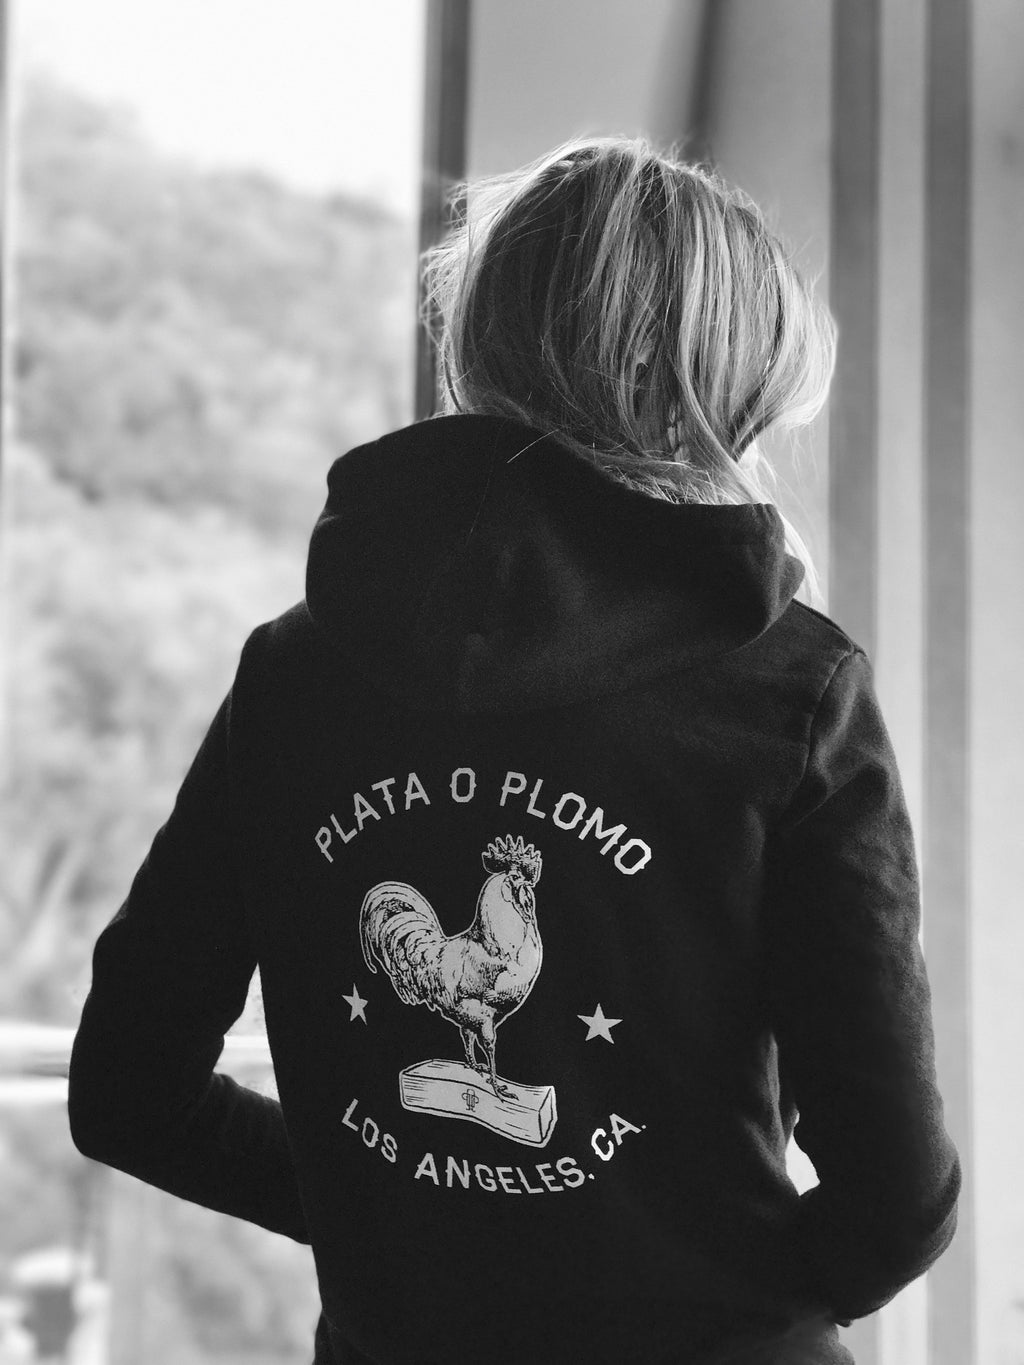 THE CHICKEN ON A BRICK | WOMENS ZIP-UP HOODIE - Plata O Plomo LA